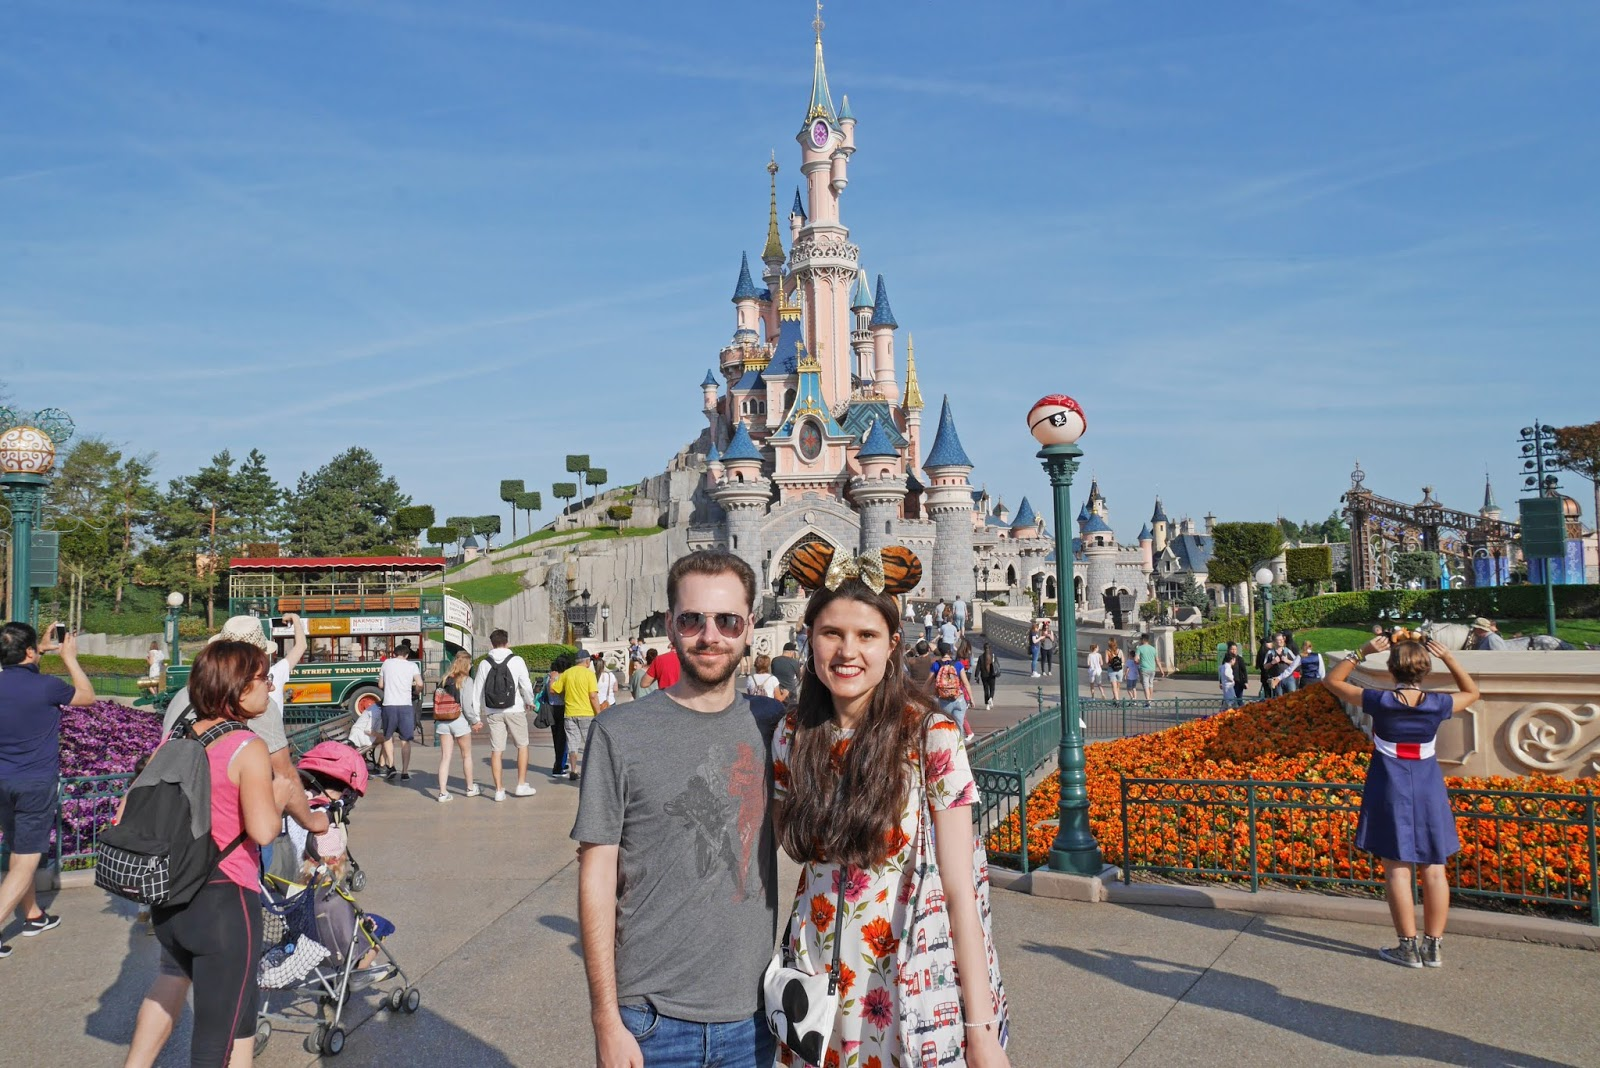 Photo in front of Sleeping Beauty's Castle at Disneyland Paris